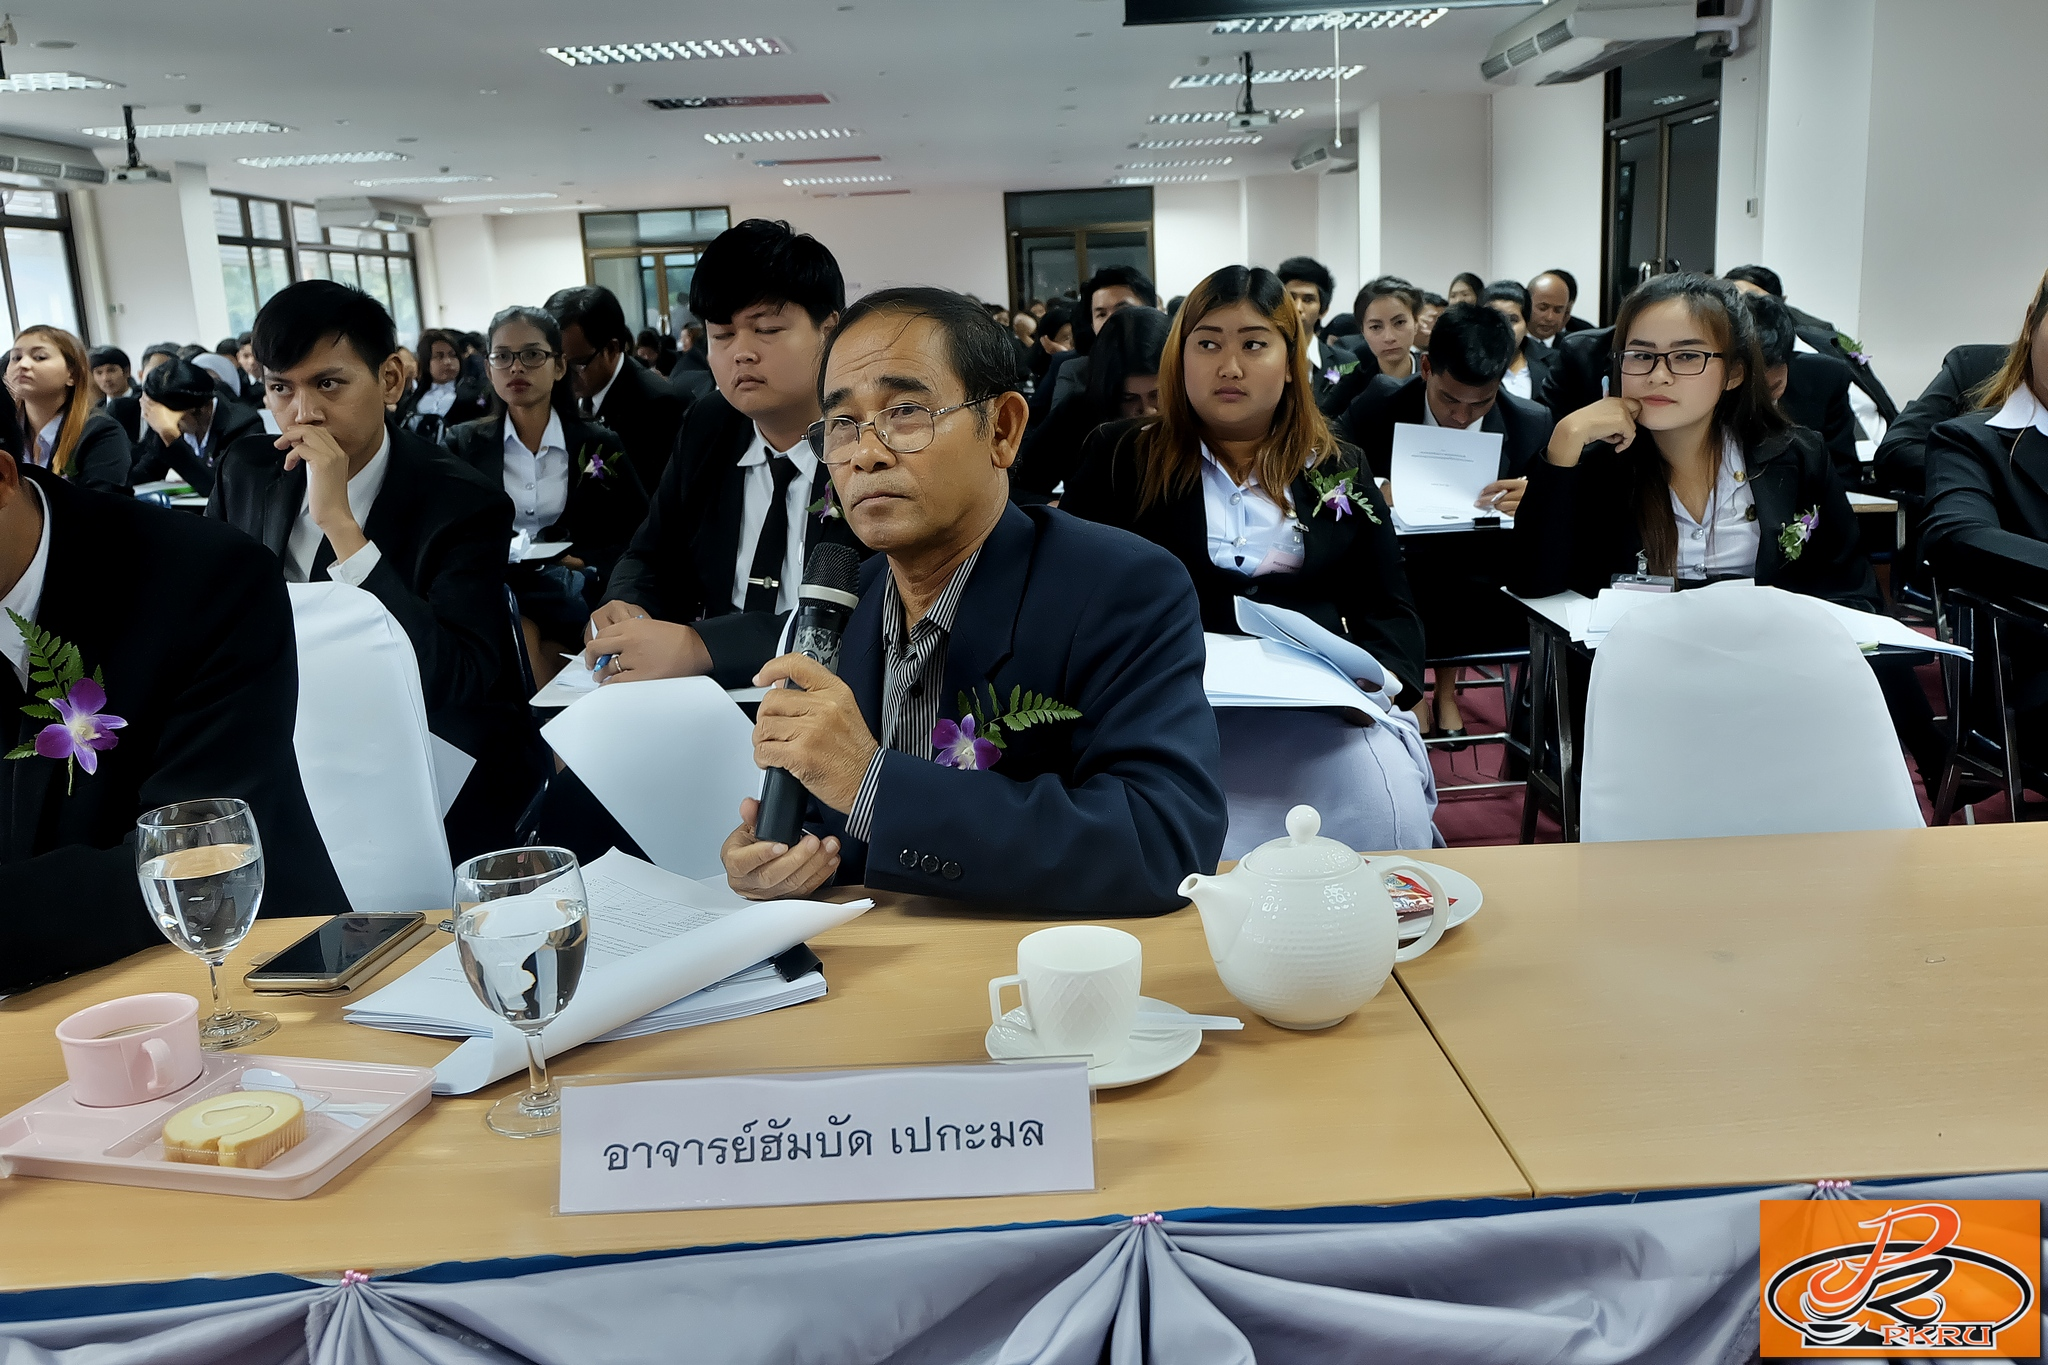 phuket public administration program may 2017 12